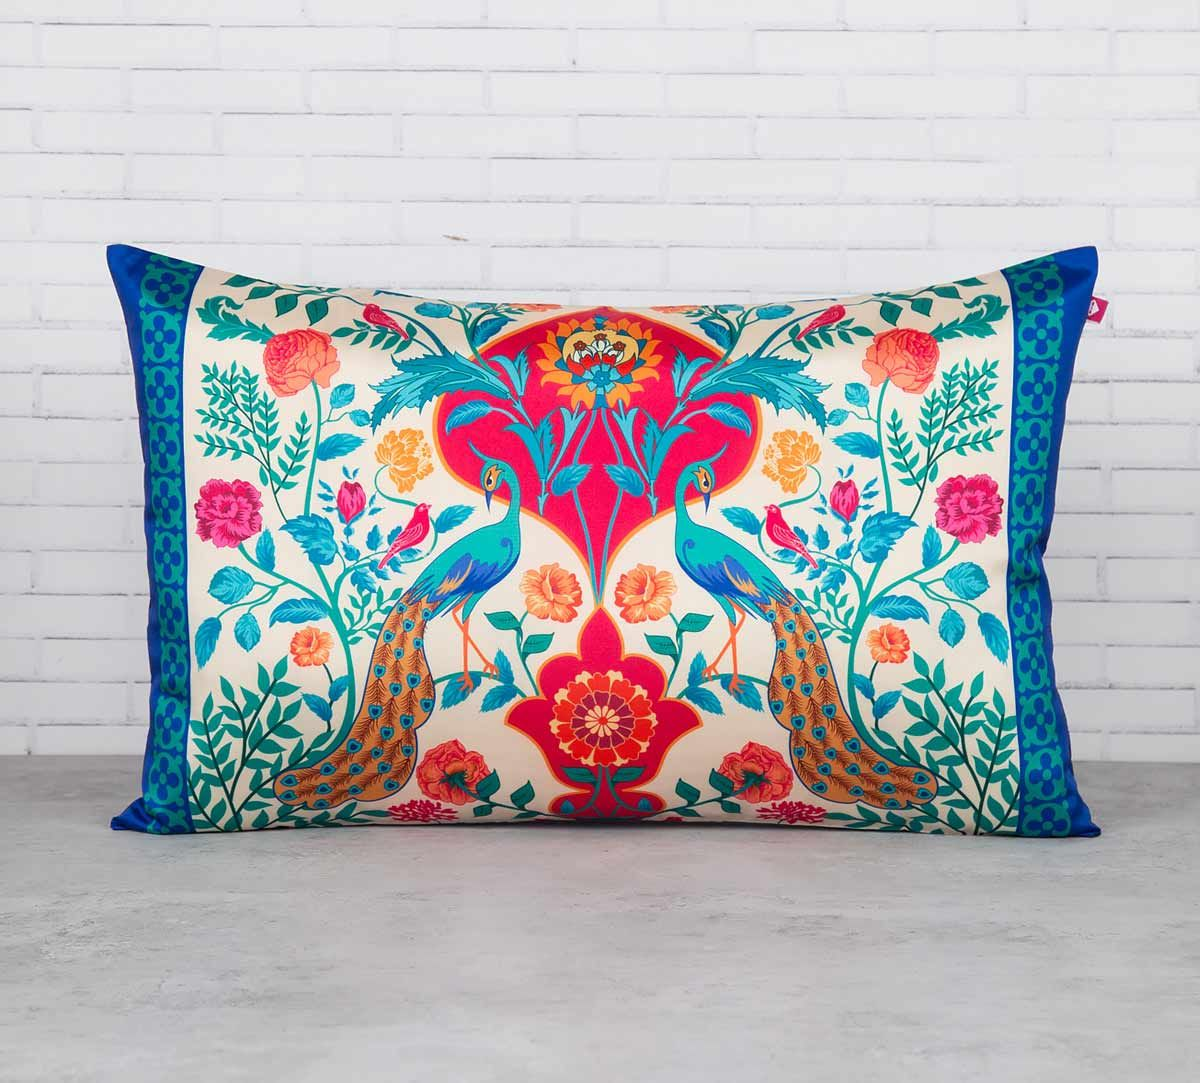 India Circus The Bright Birds and Floral Burst Blended Taf Silk Cushion Cover